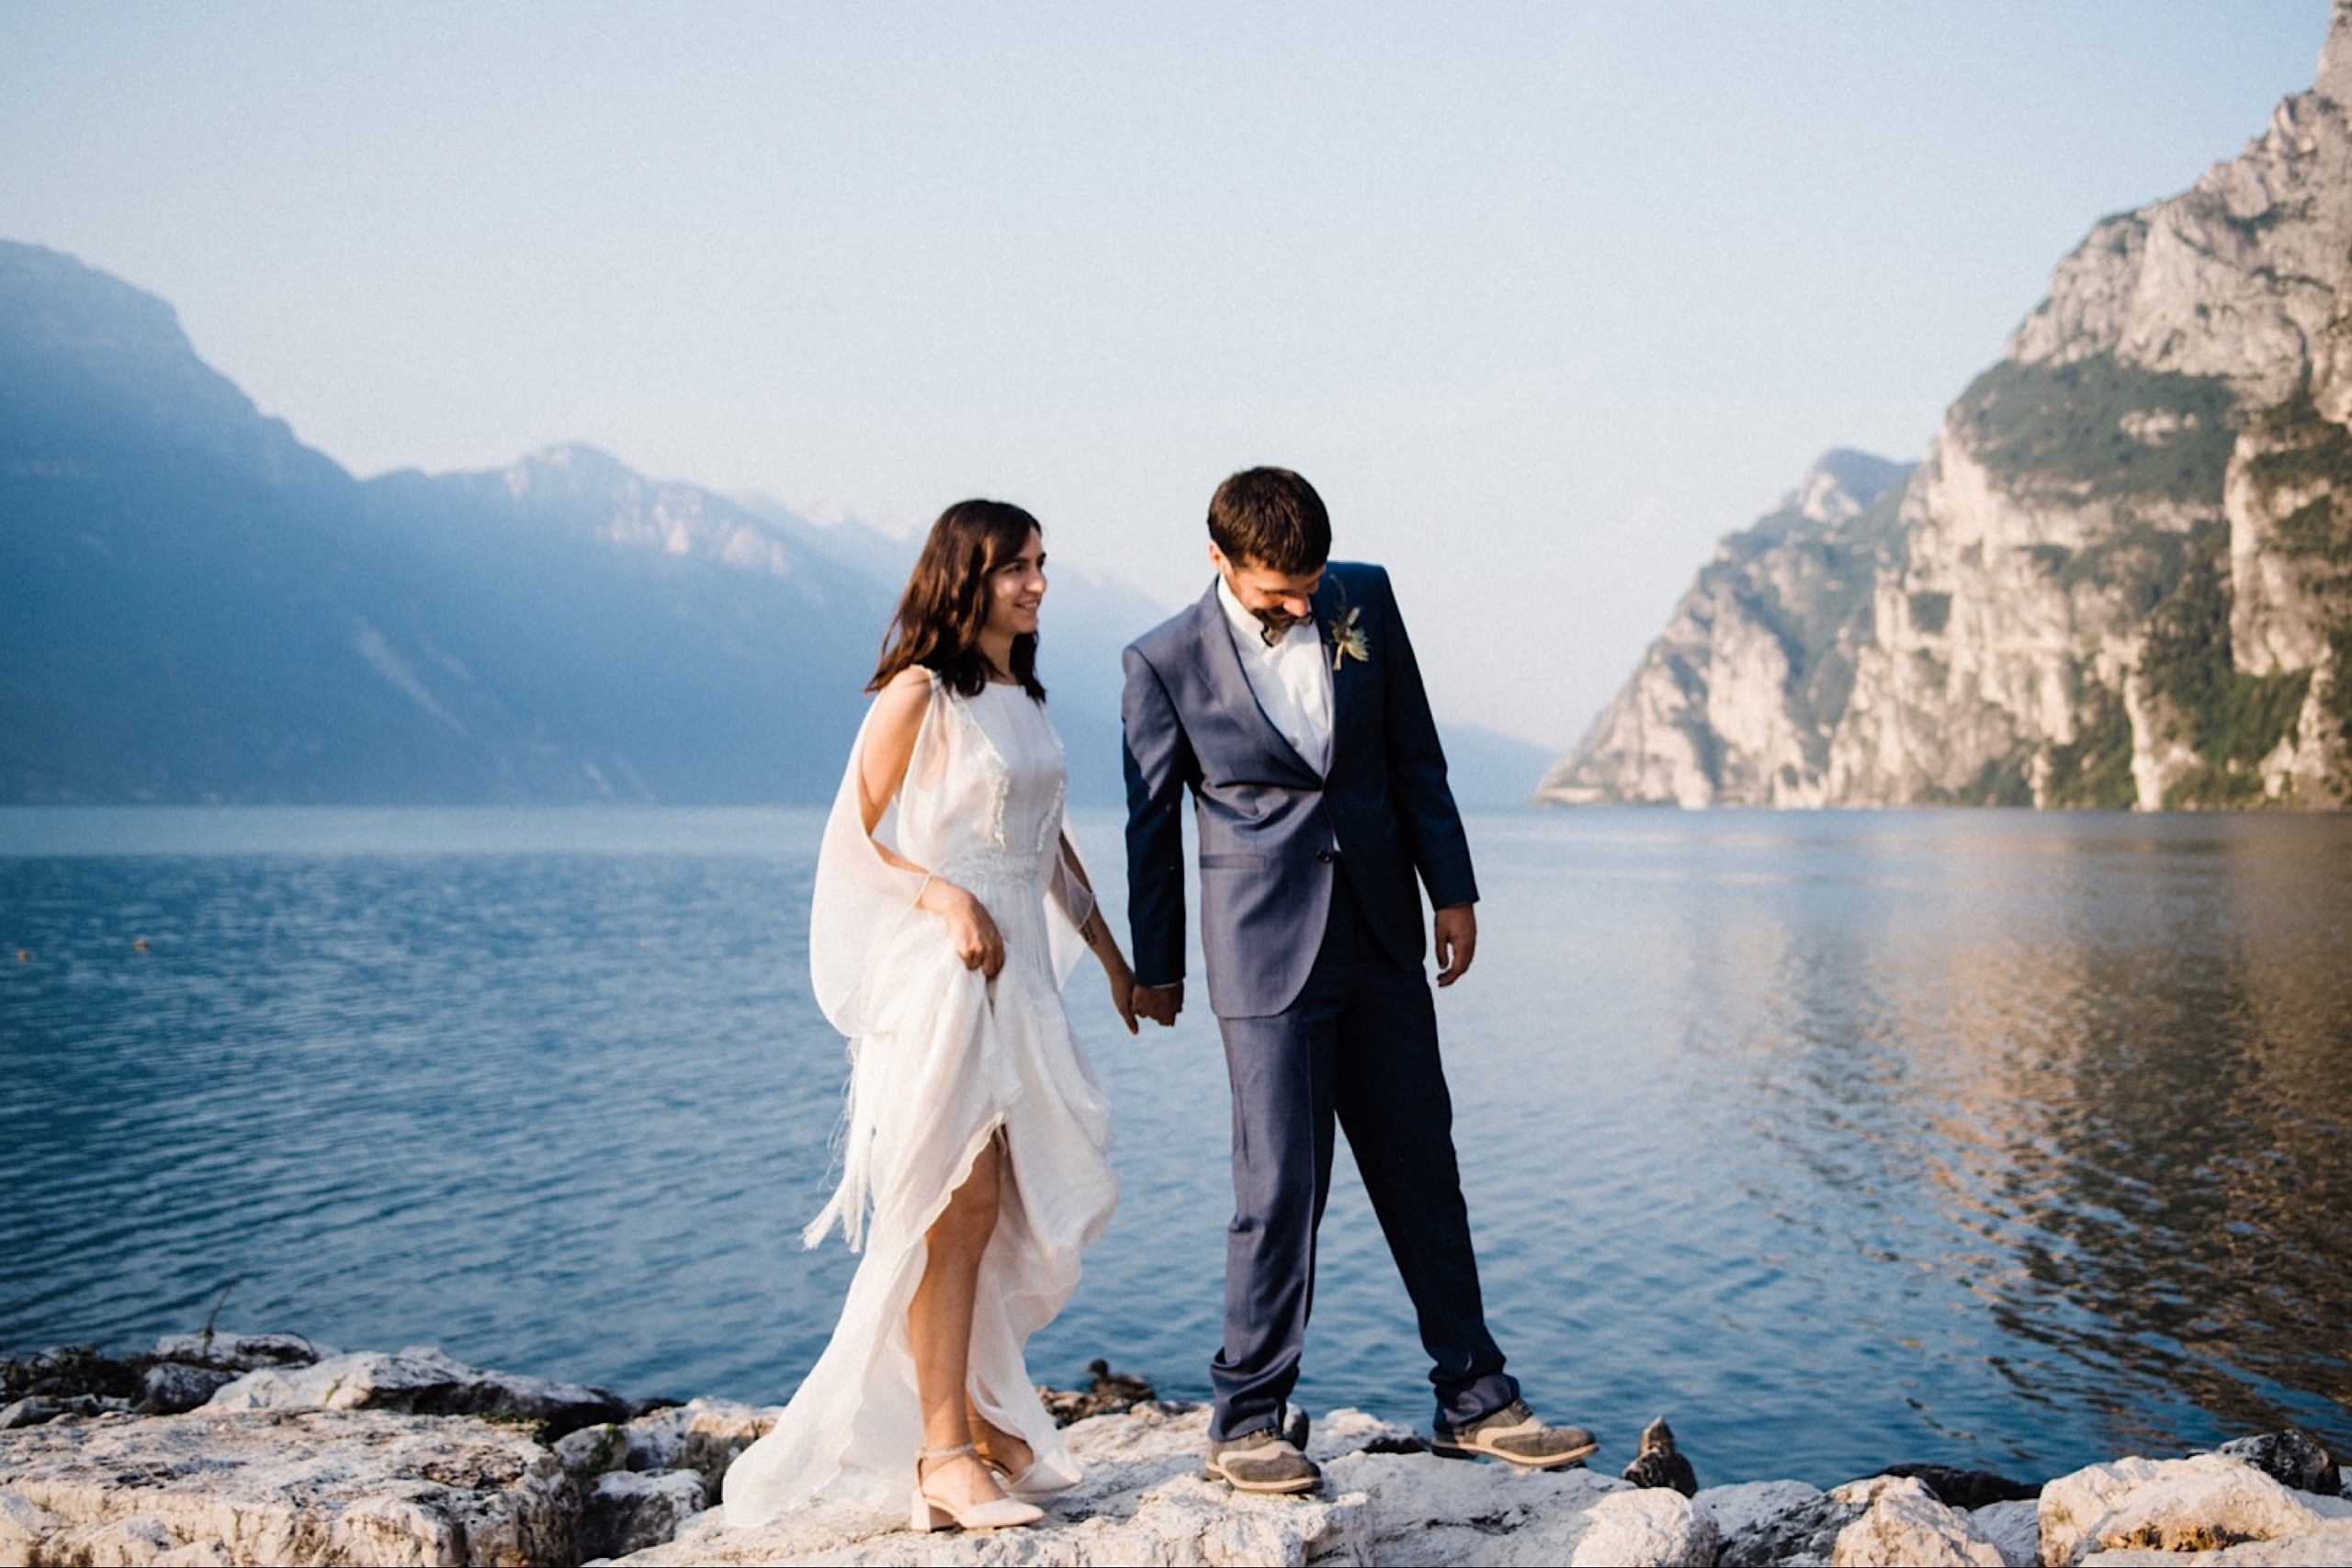 A wide shot by a Candid Italian Elopement Photographer of a newly married couple walking along rocks by the side of Lake Garda, with mountains in the background.